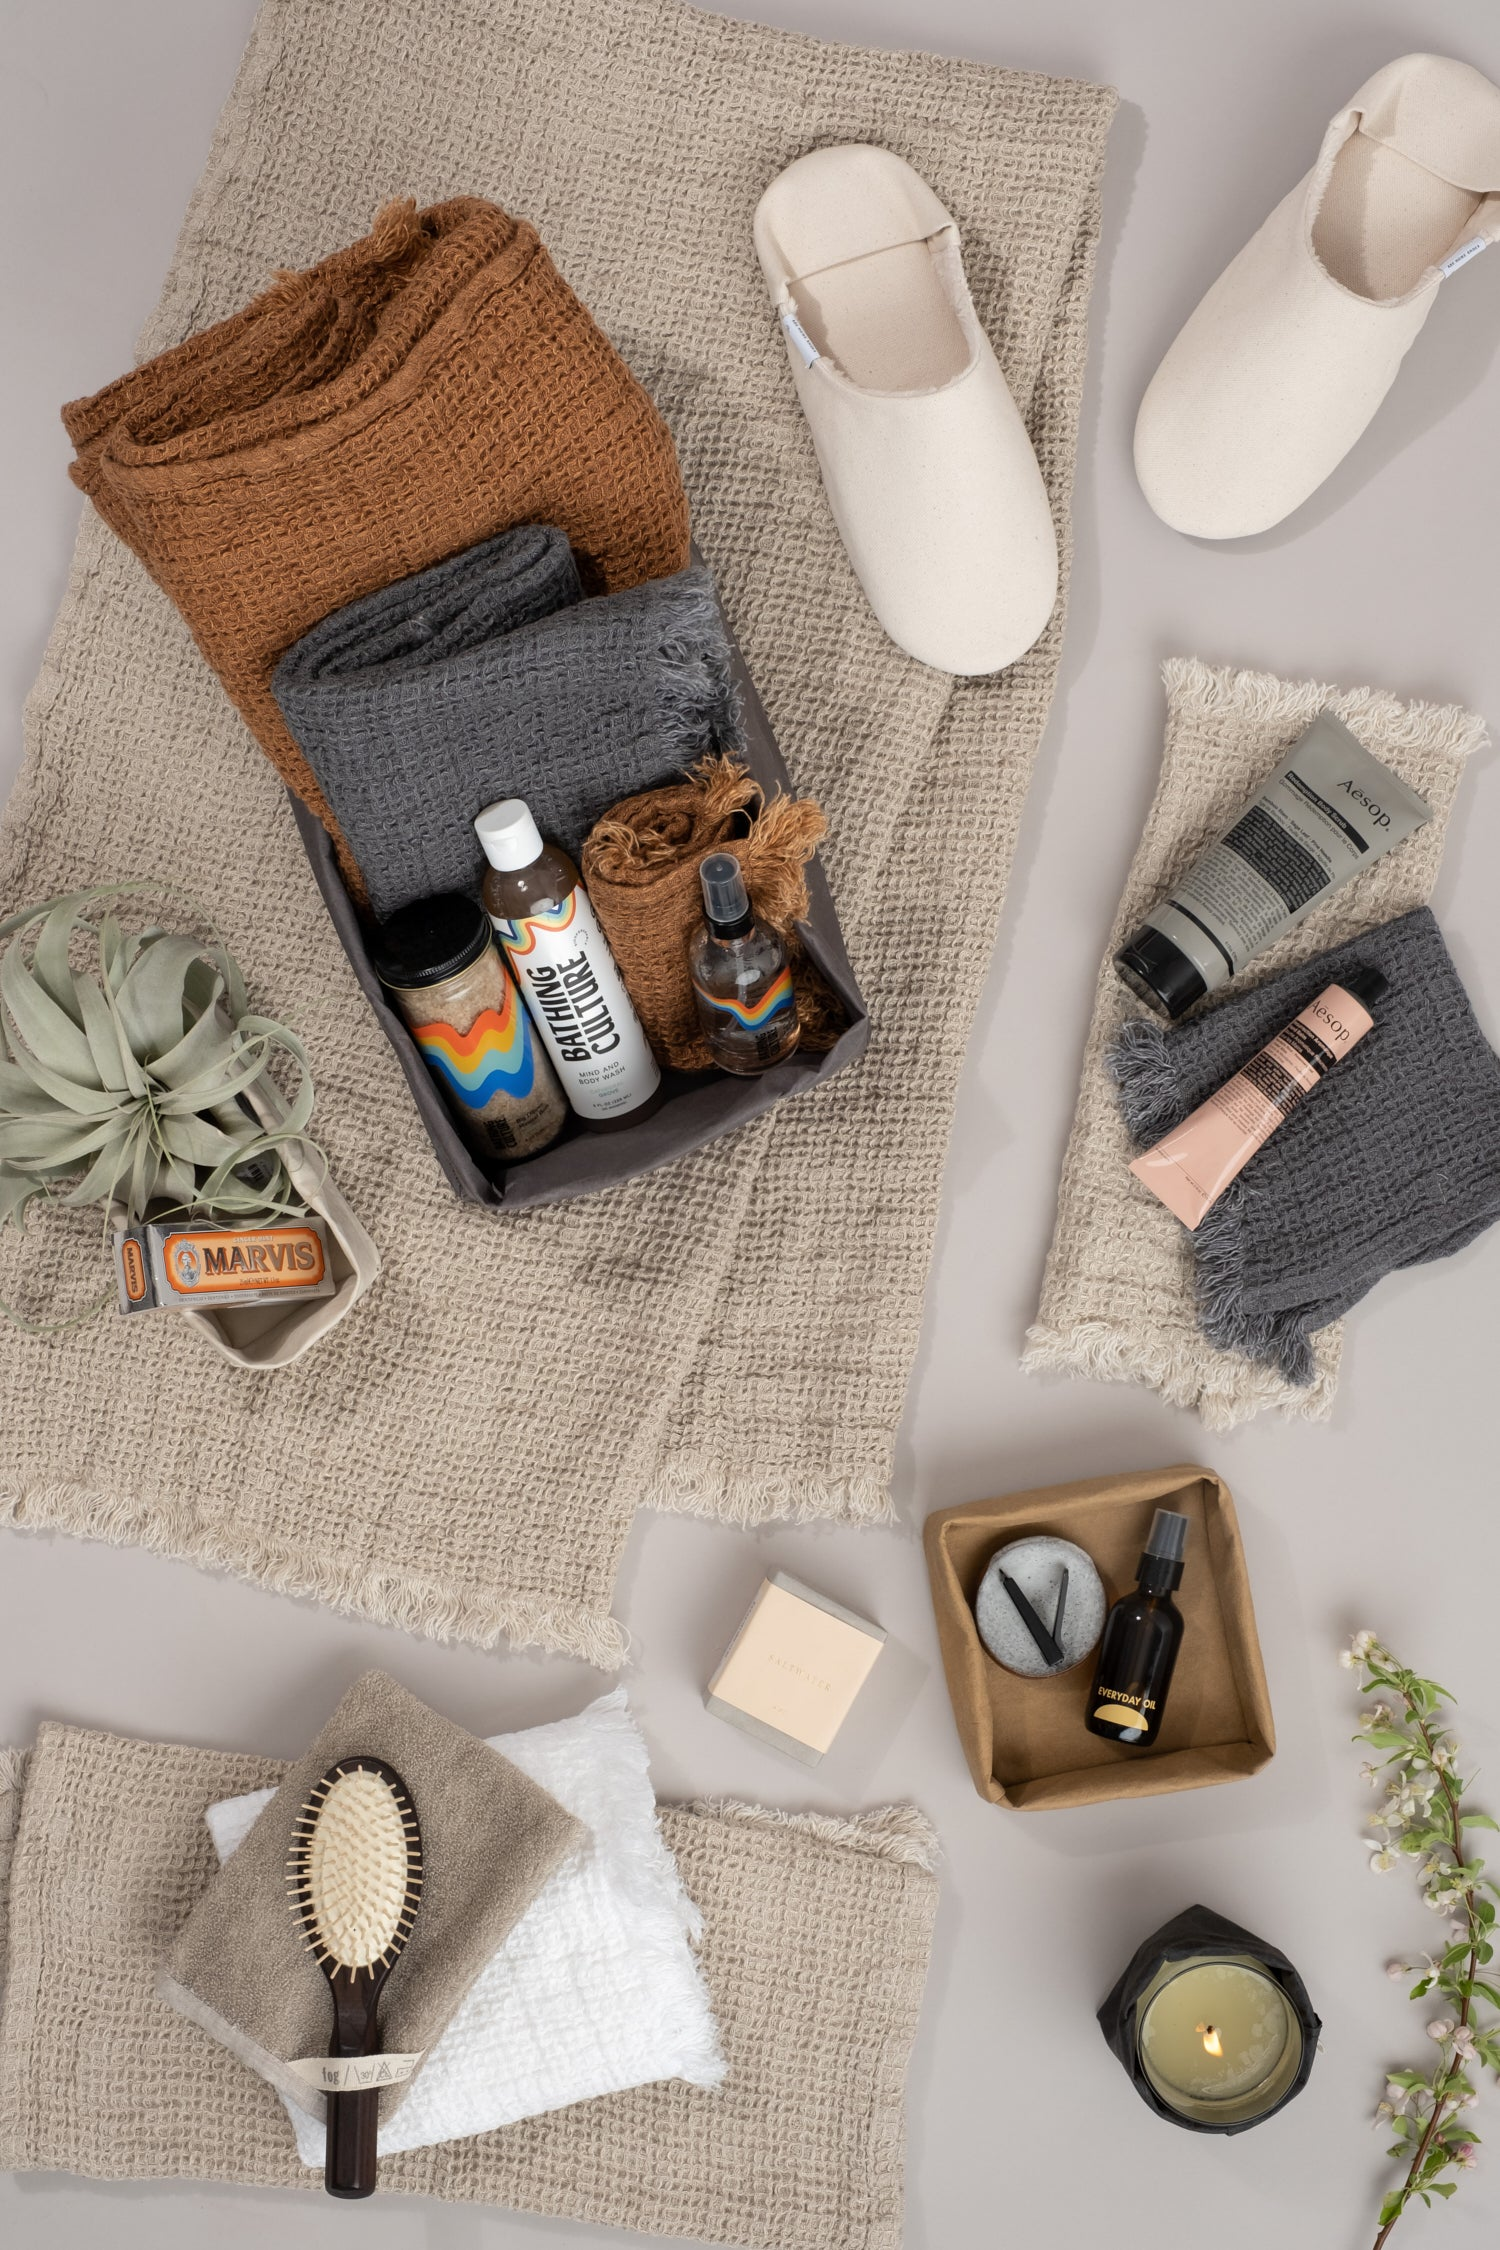 Hale Mercantile In the Home